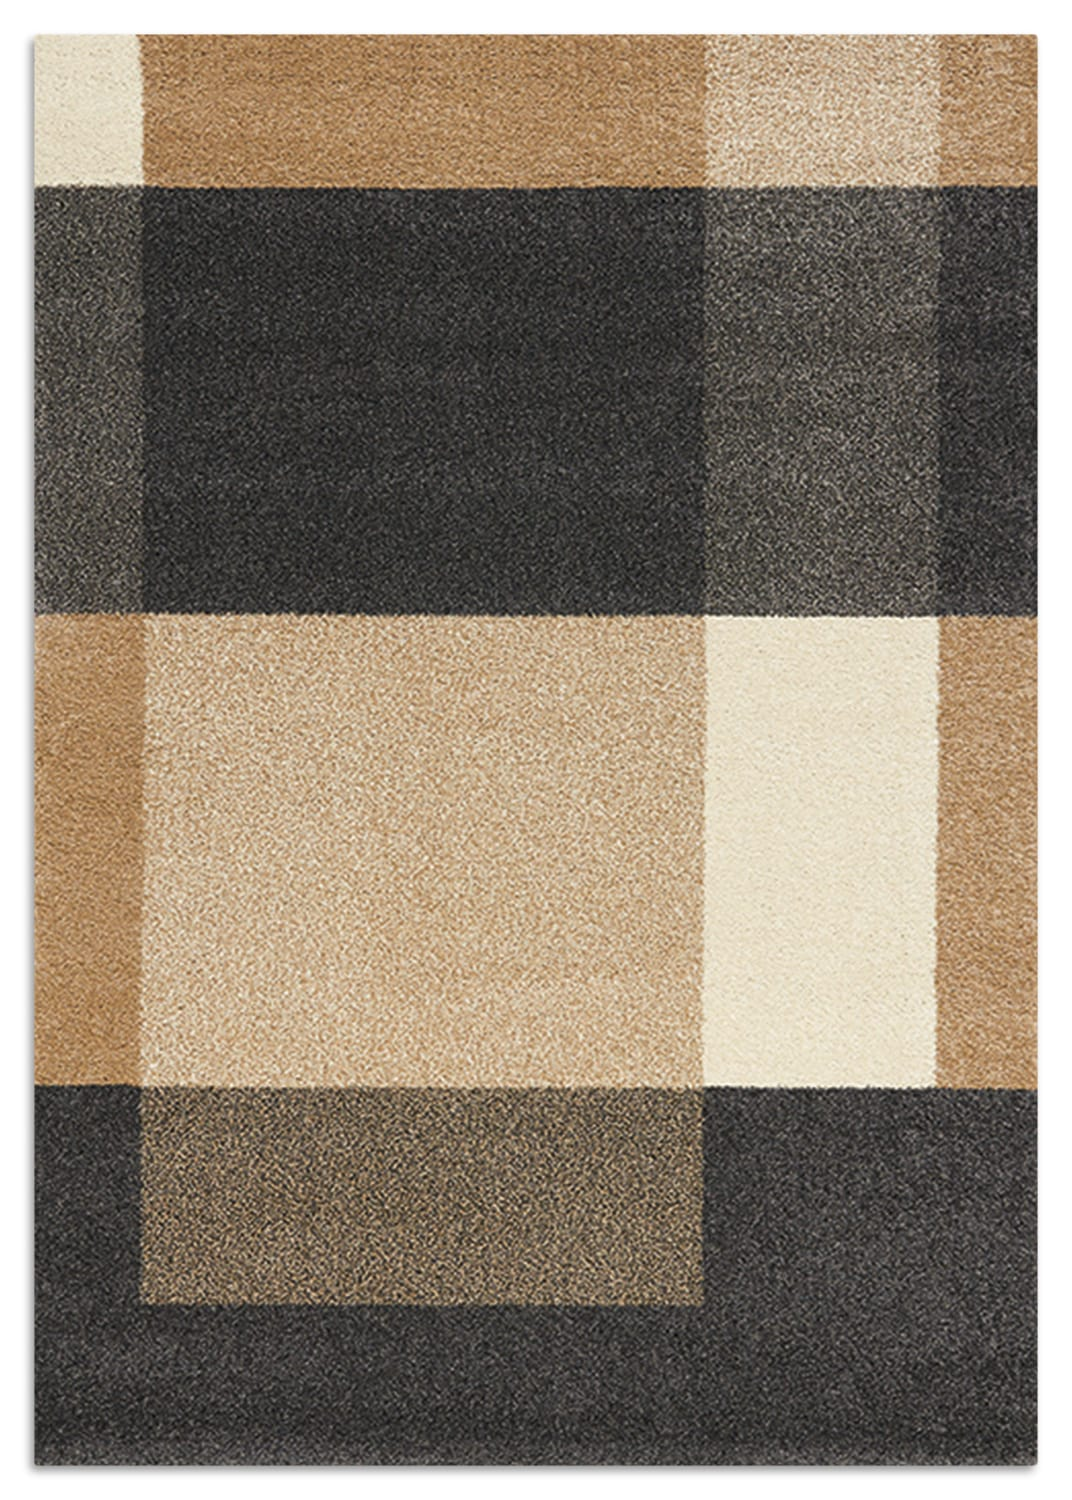 Ashbury Rectangles Area Rug – 8' x 10'